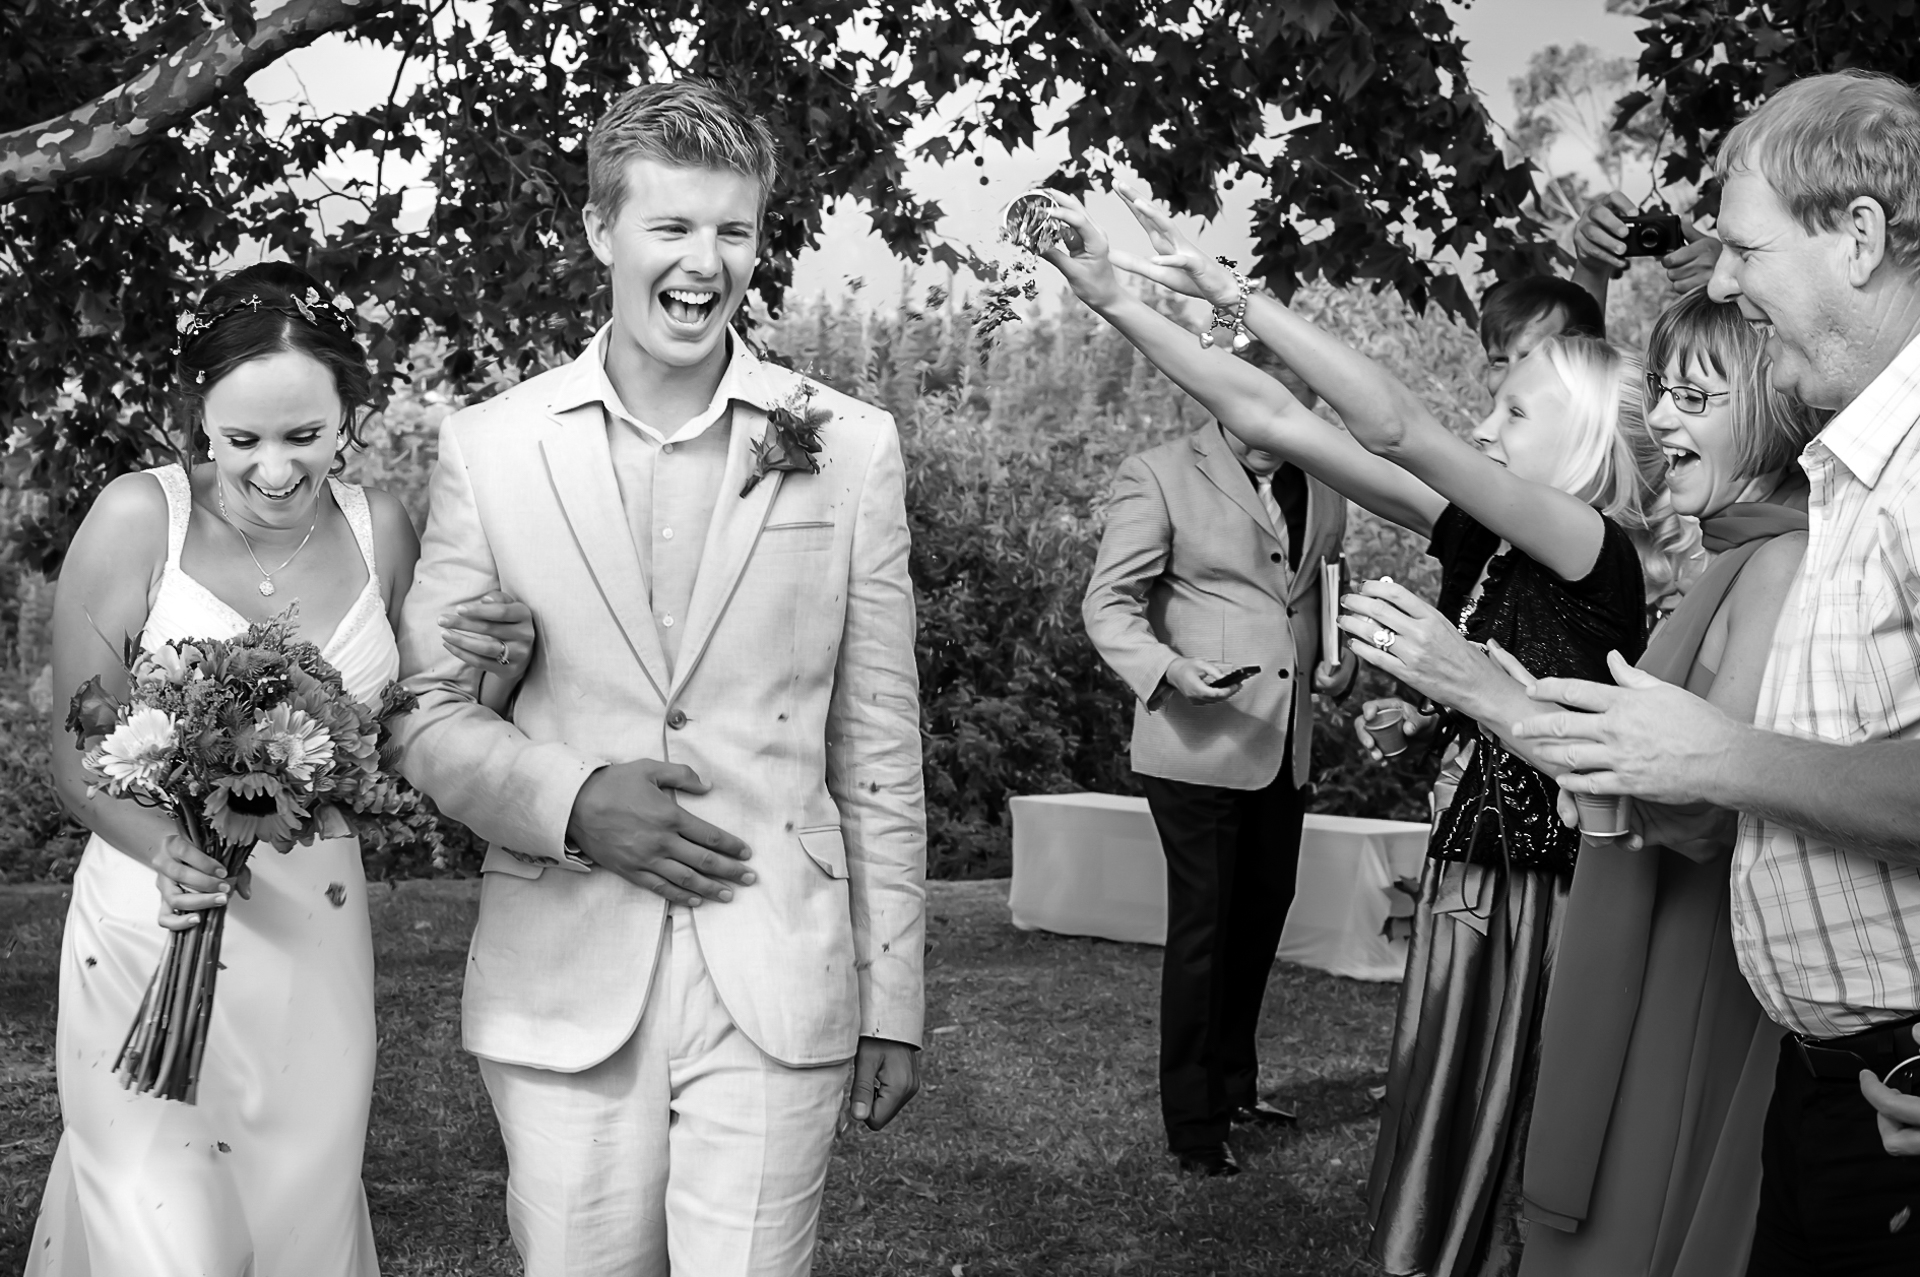 Western Cape, ZA Outdoor Elopement Ceremony Photo | The bride and groom are being showered by flower petals